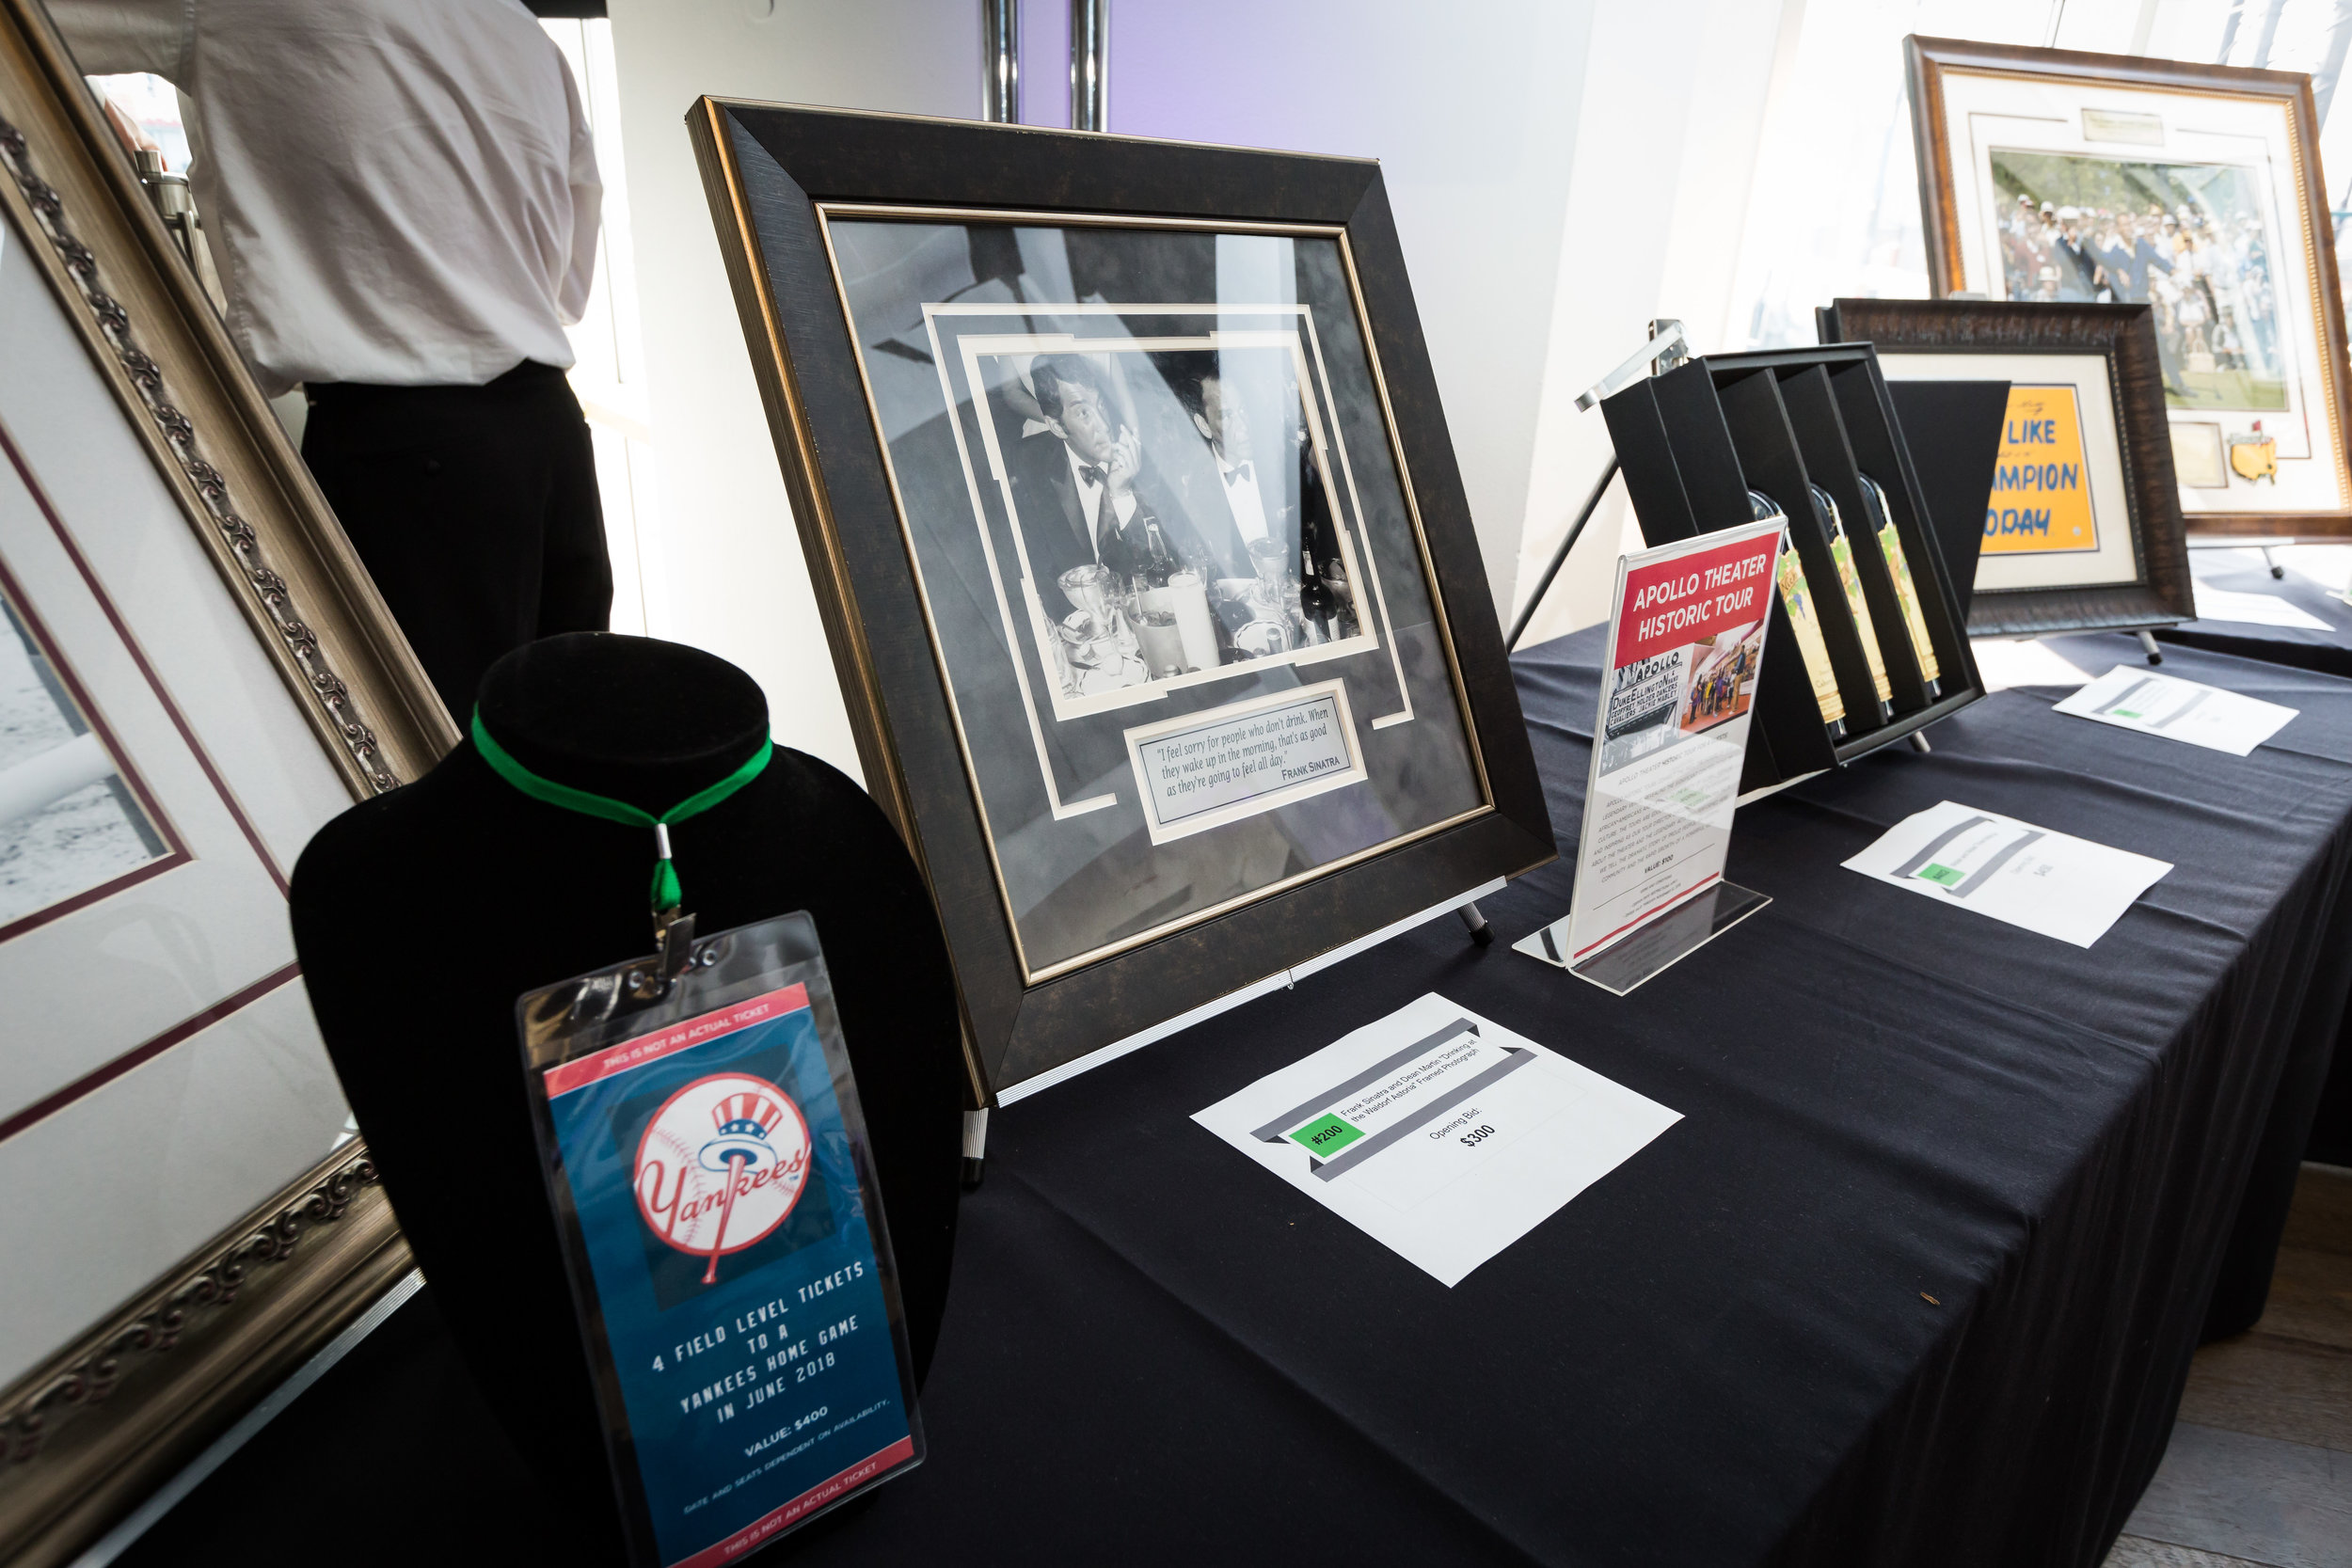 Auction Items: 4 field level tickets to the yankees, framed photograph of Frank Sinatra, Apollo Theater Historic Tour